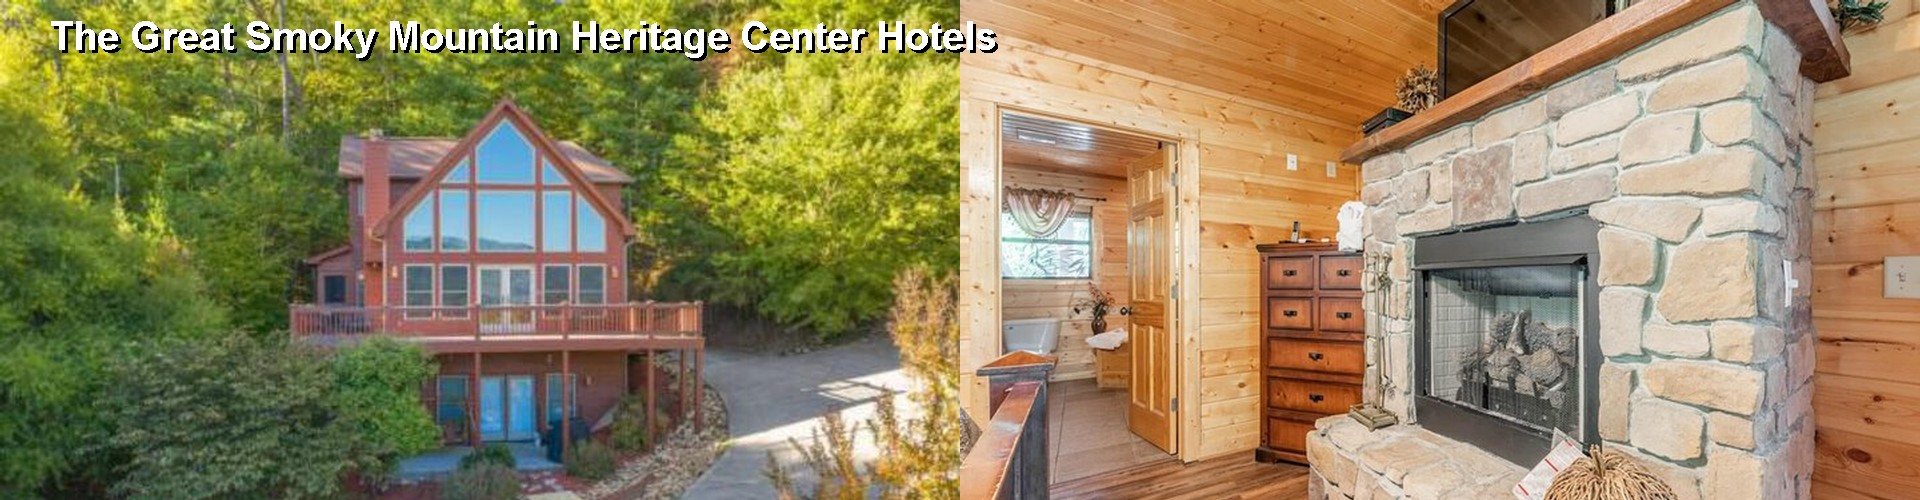 5 Best Hotels Near The Great Smoky Mountain Heritage Center